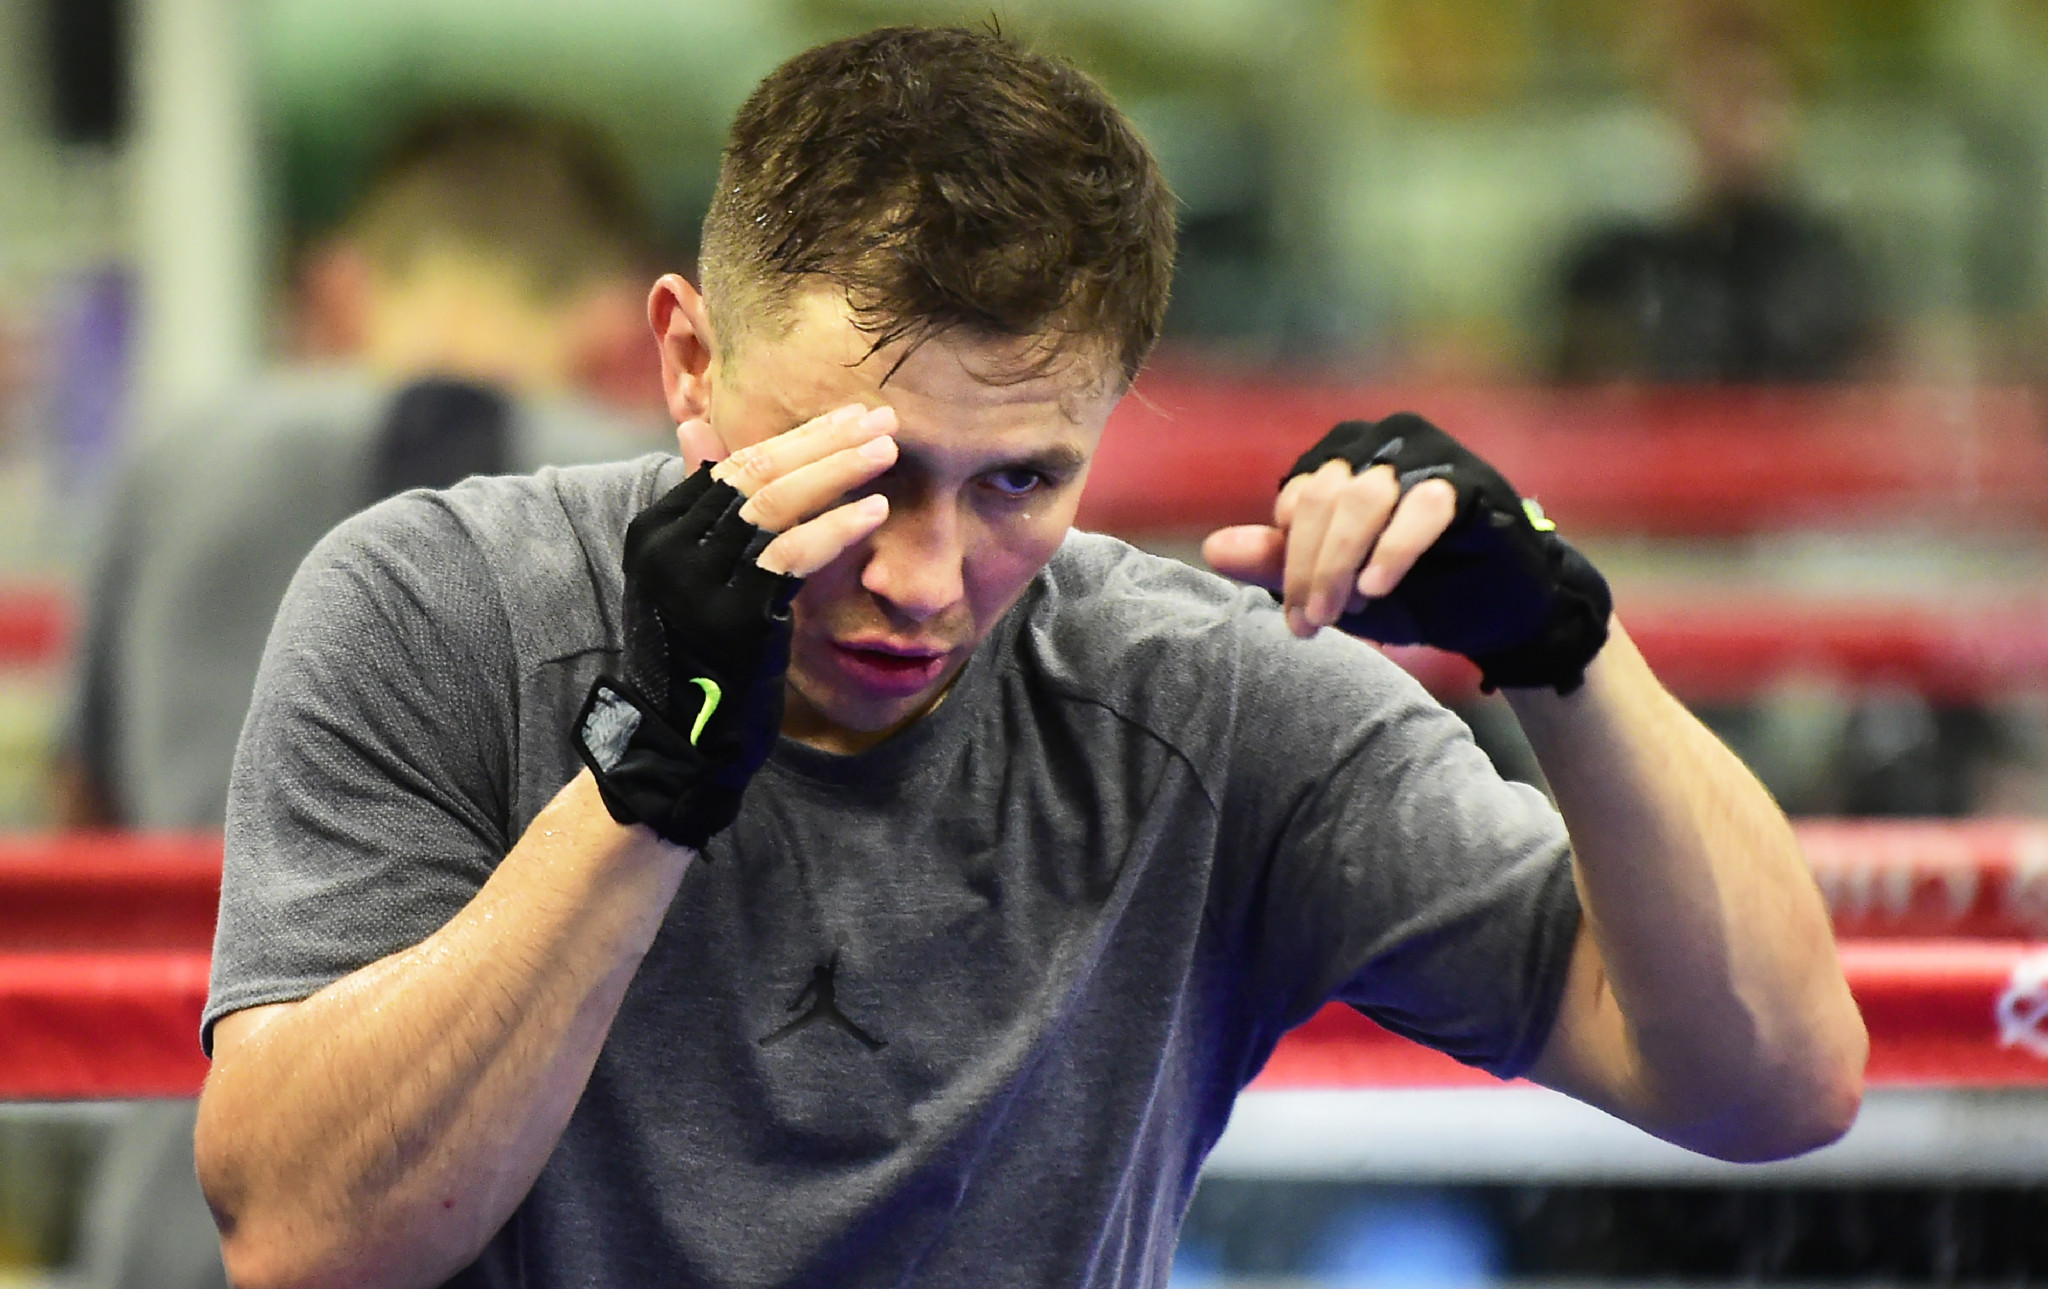 Gennady Golovkin has made further accusations of cheating against upcoming opponent Saul Alvarez ©Getty Images